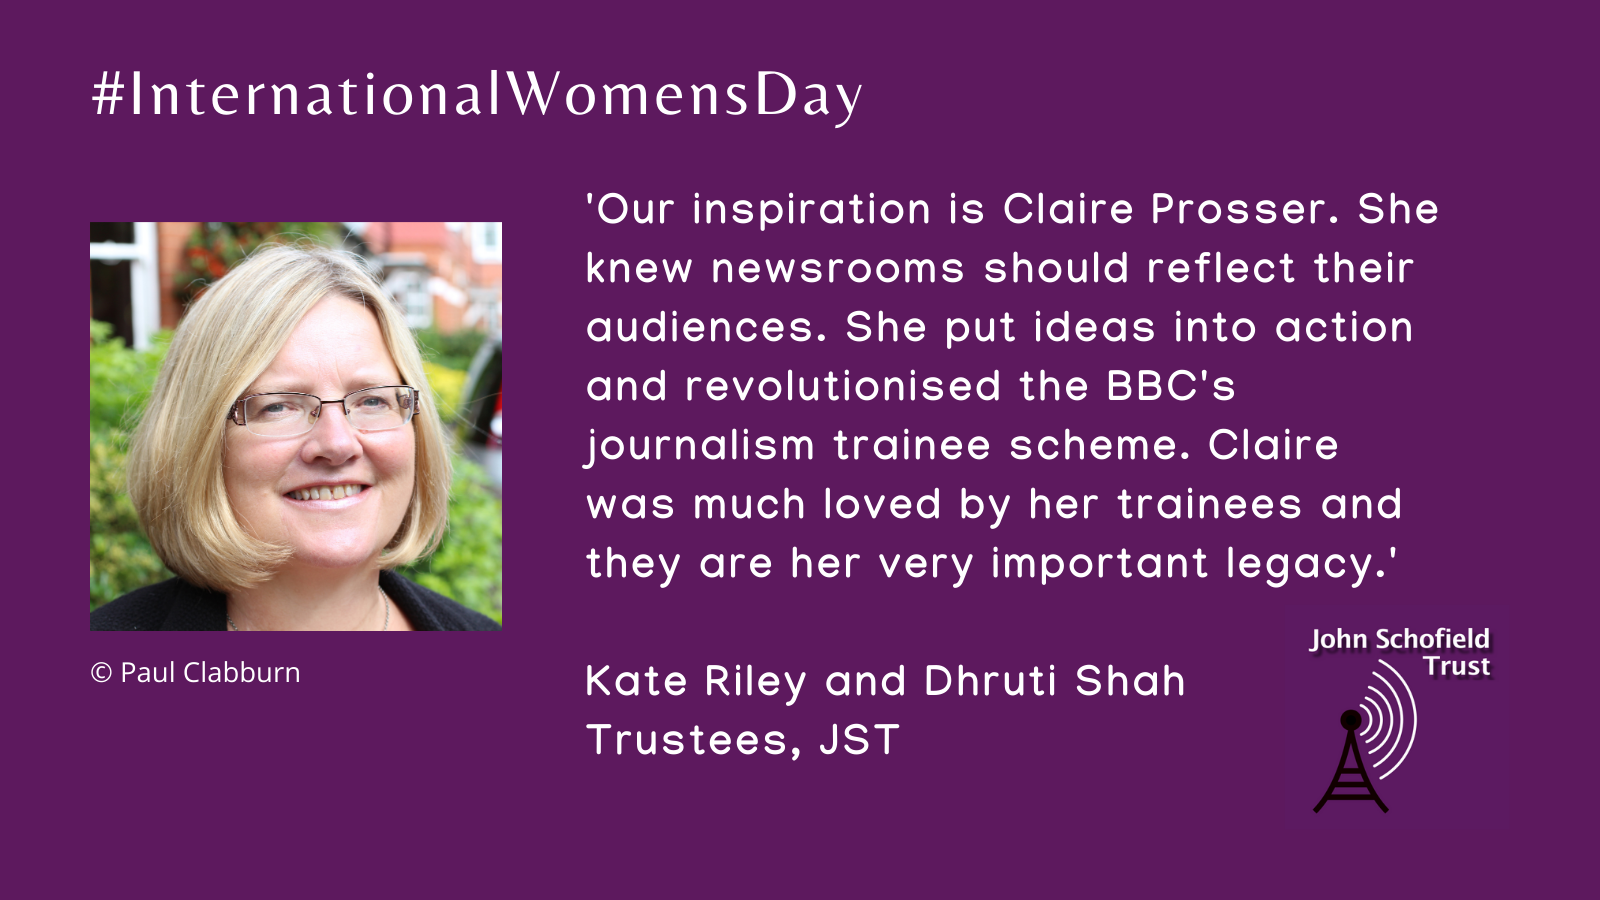 Kate Riley and Dhruti Shah's inspirational woman slide for #IWD